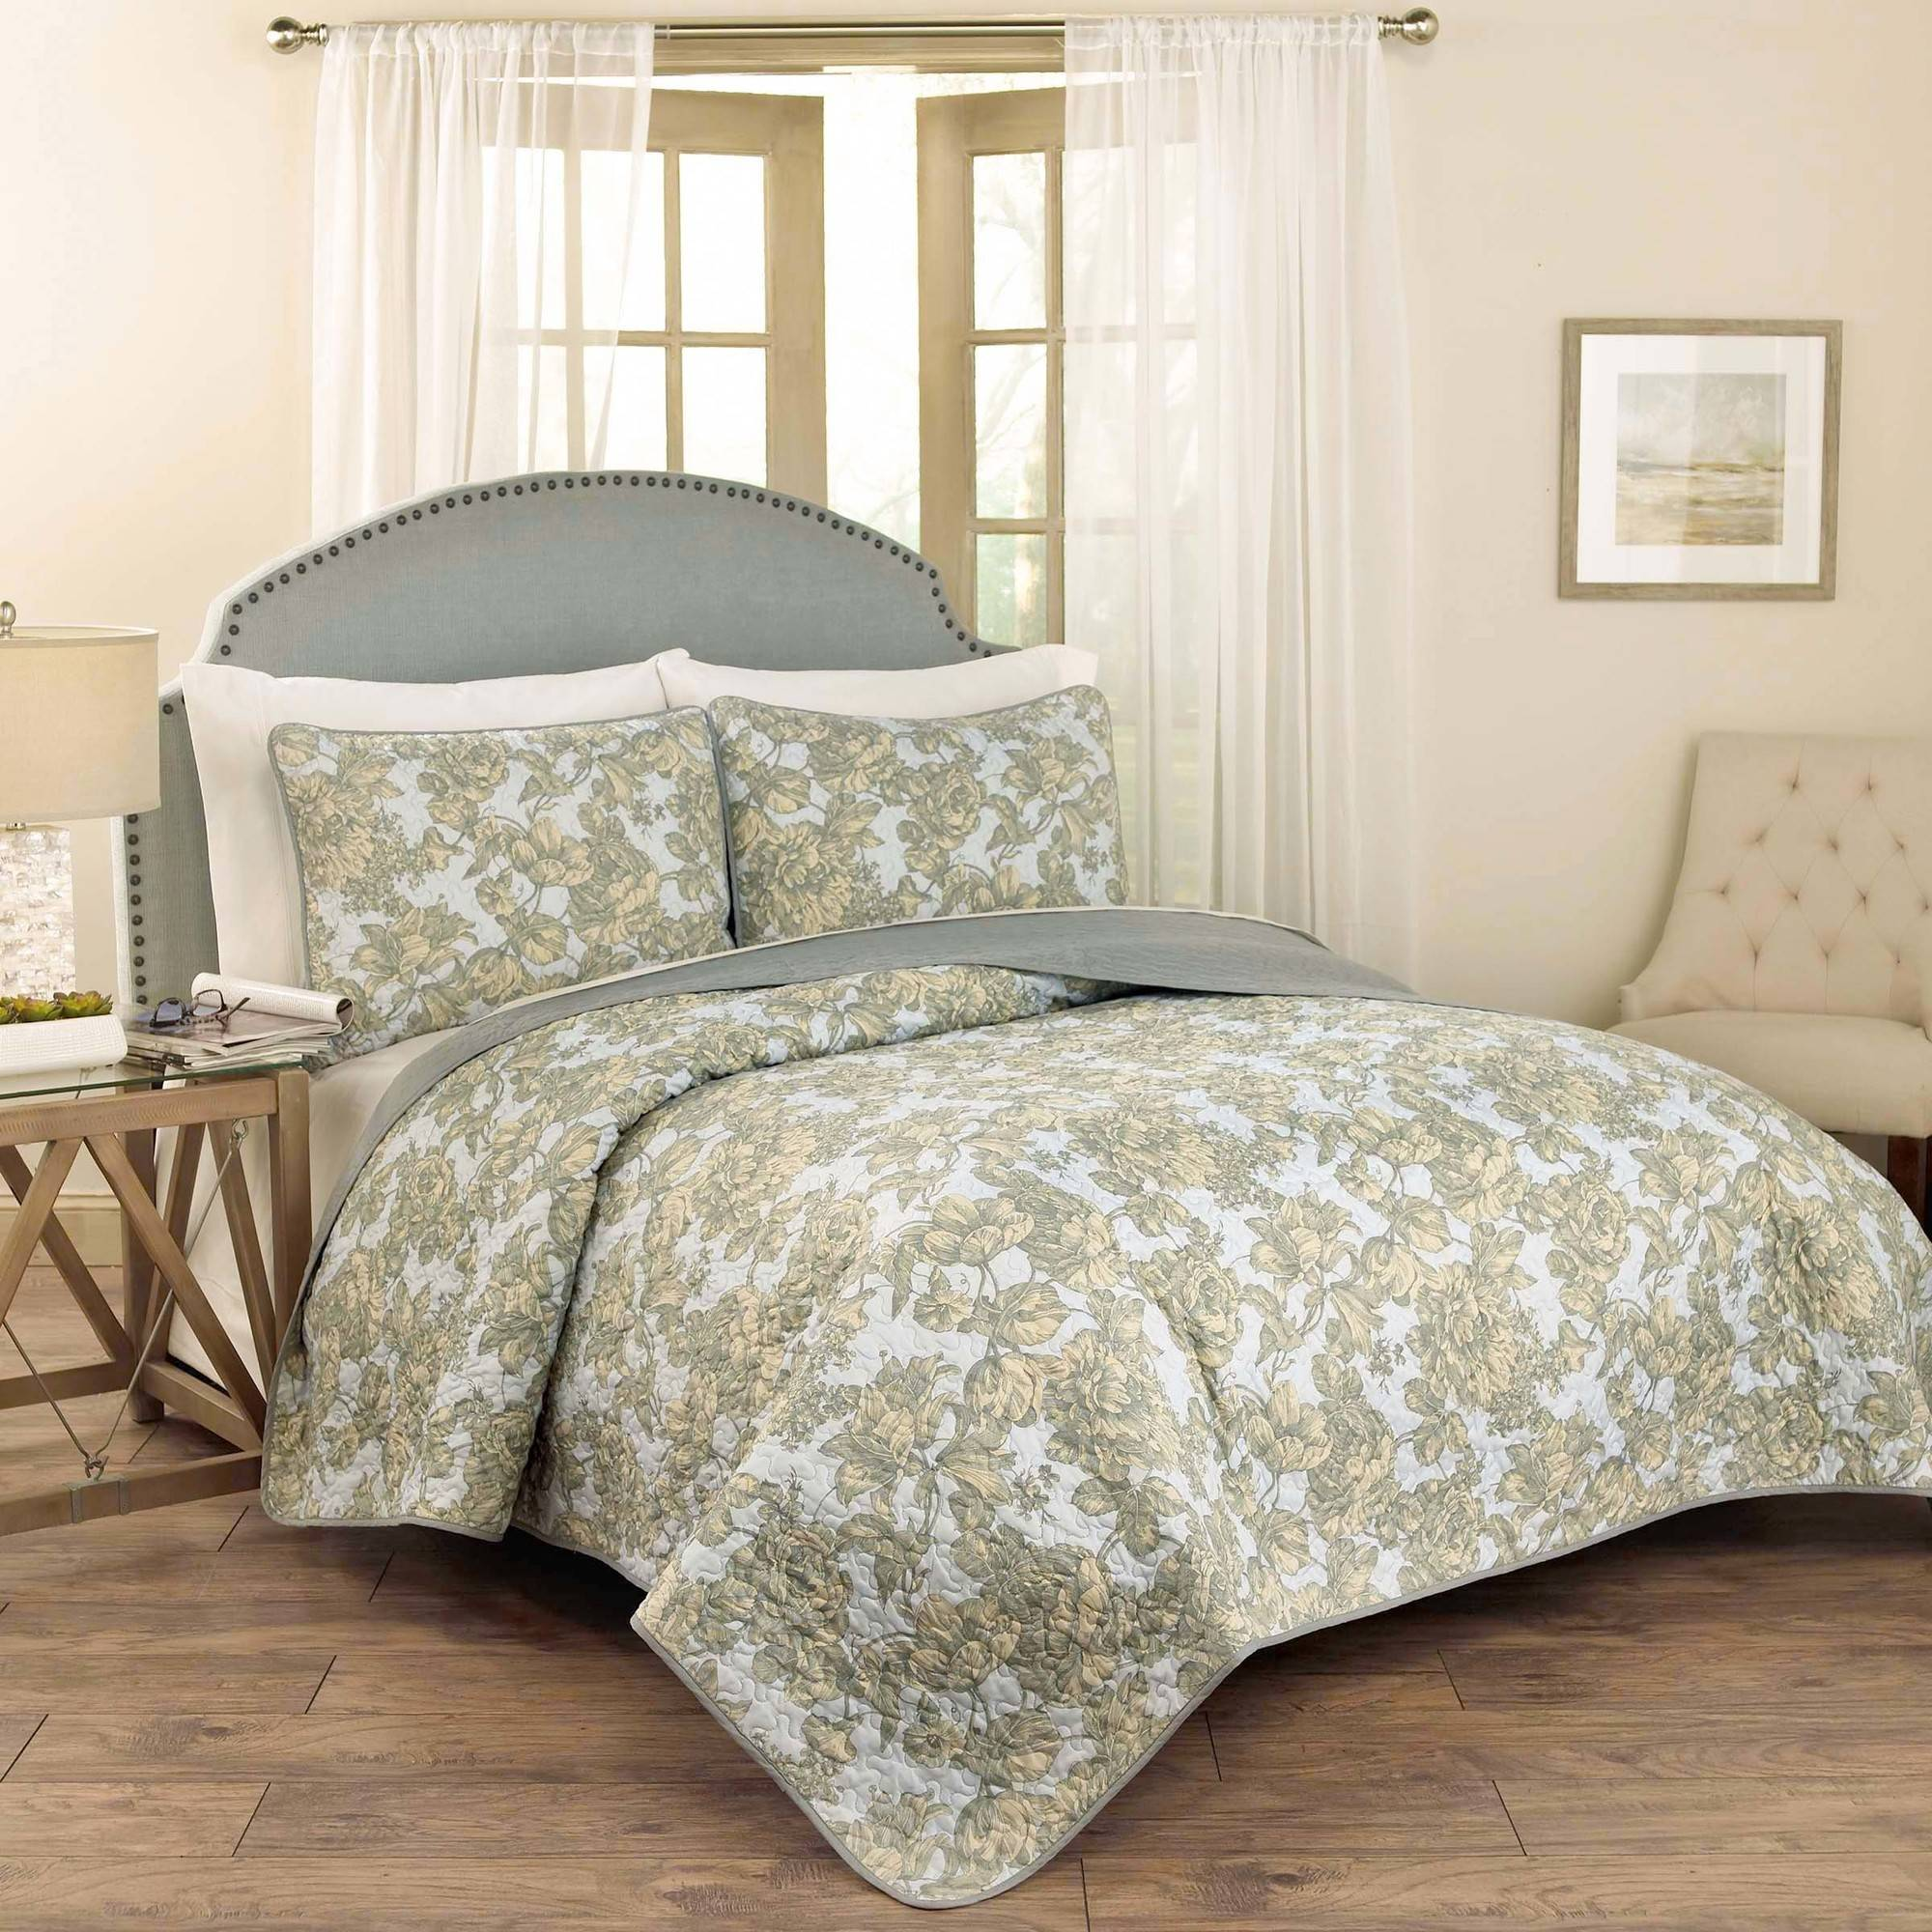 Waverly Tulip Toile Quilt Collection, 3-Piece